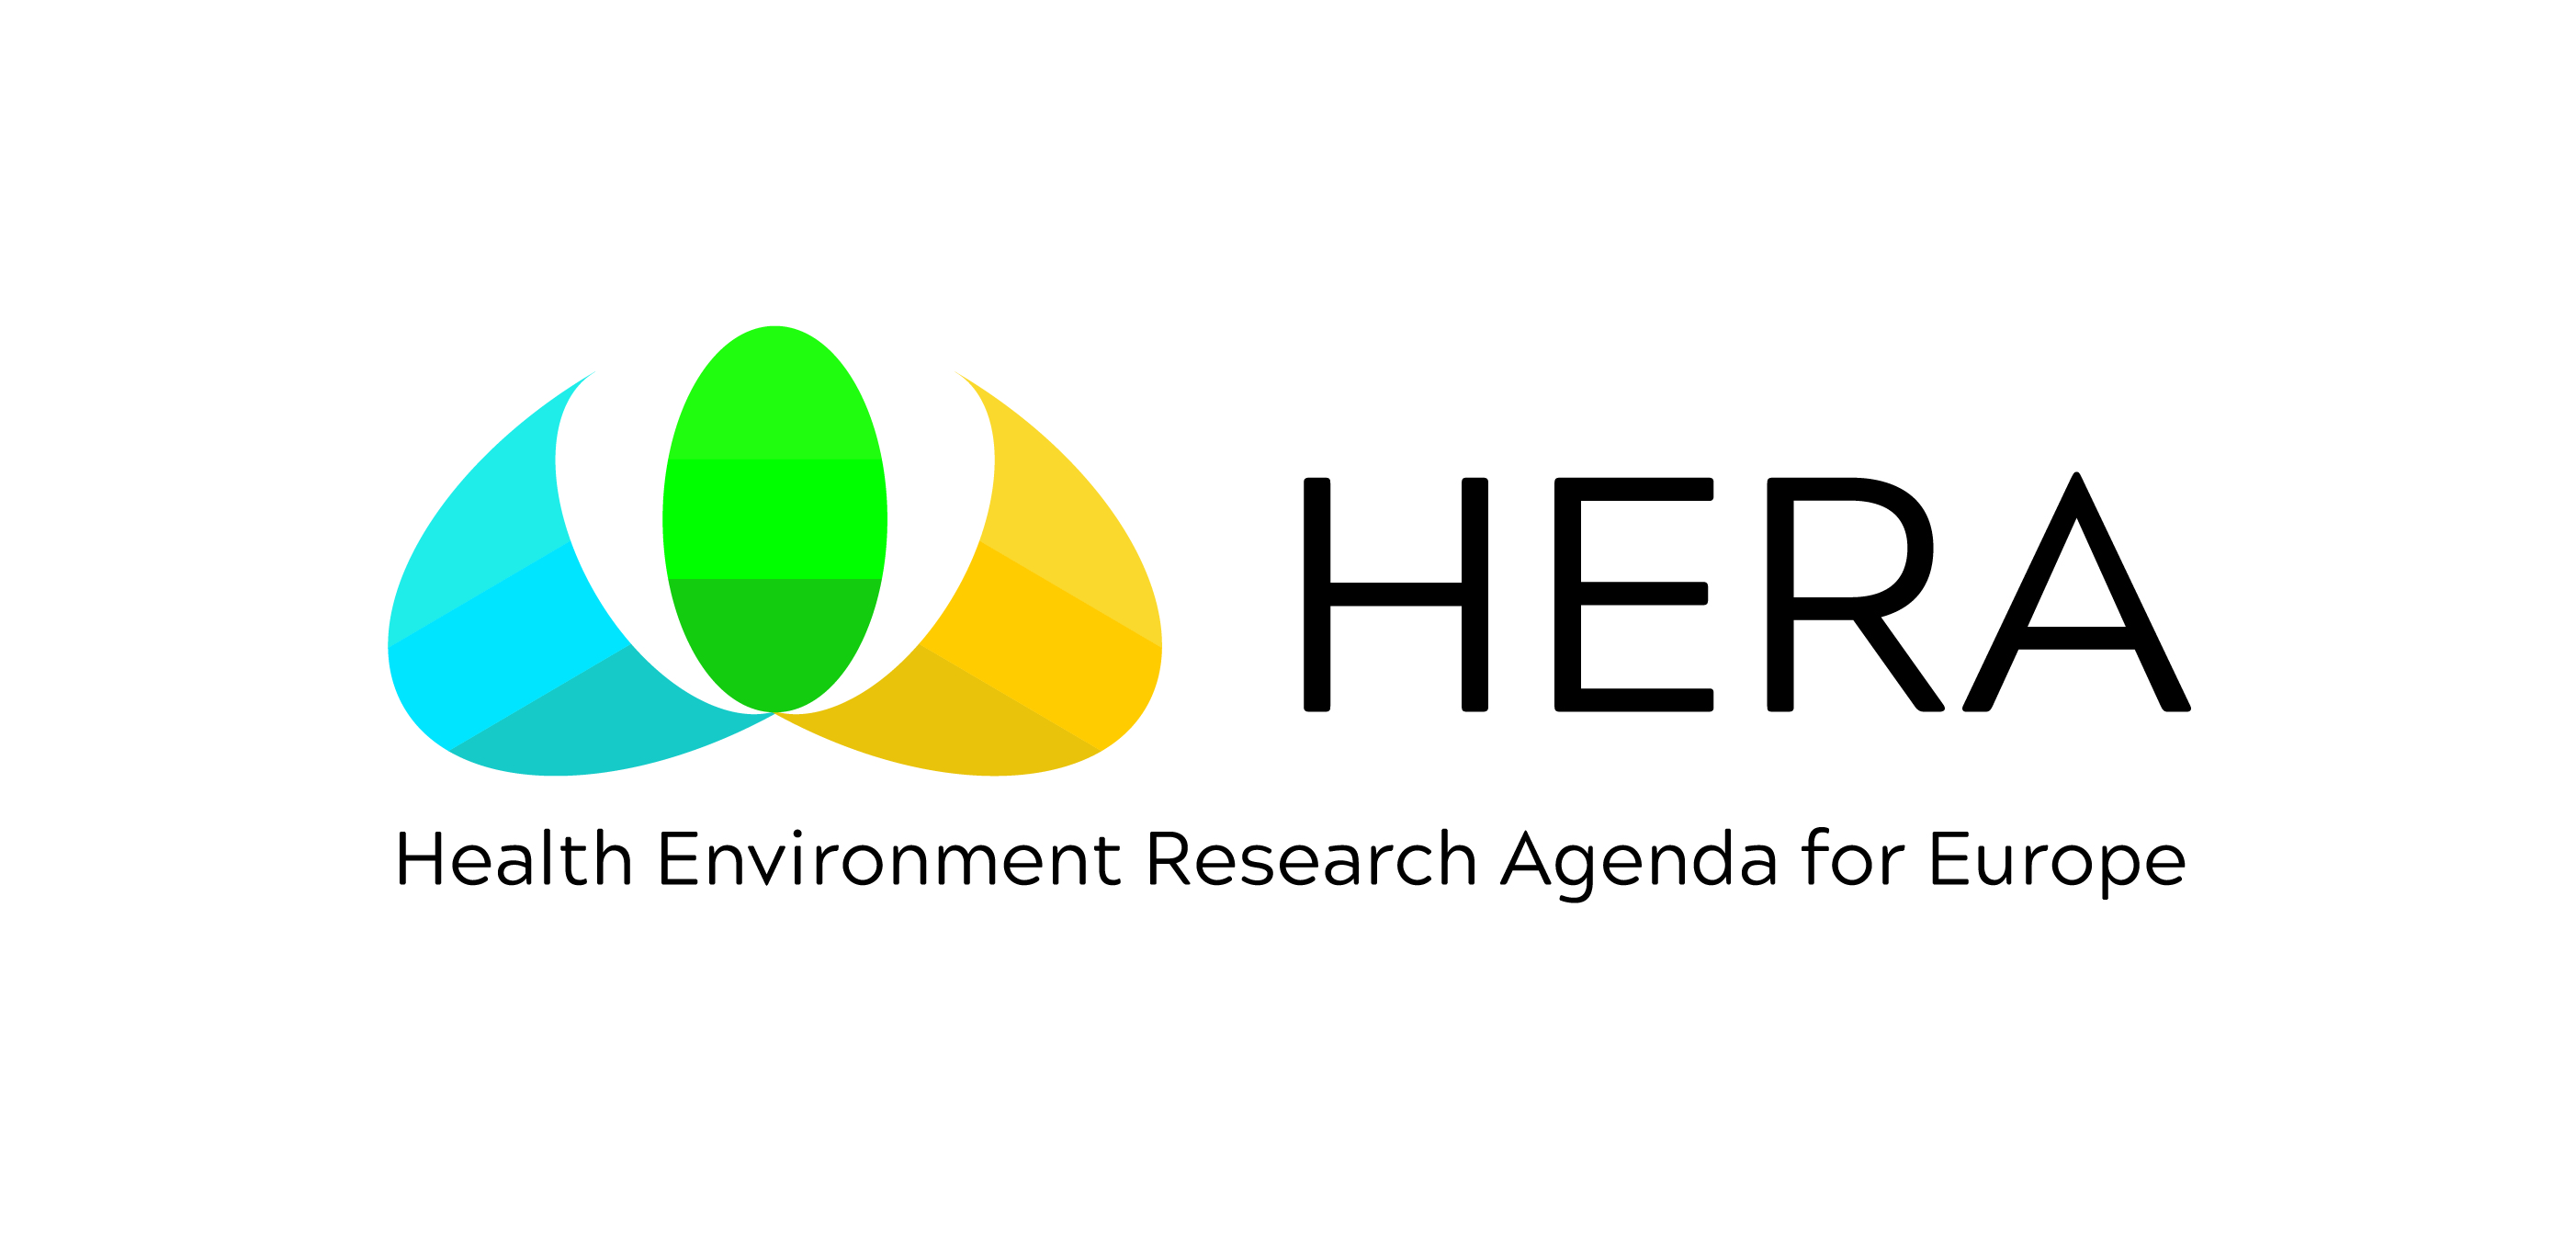 Integrating Environment and Health Research: a Vision for the EU